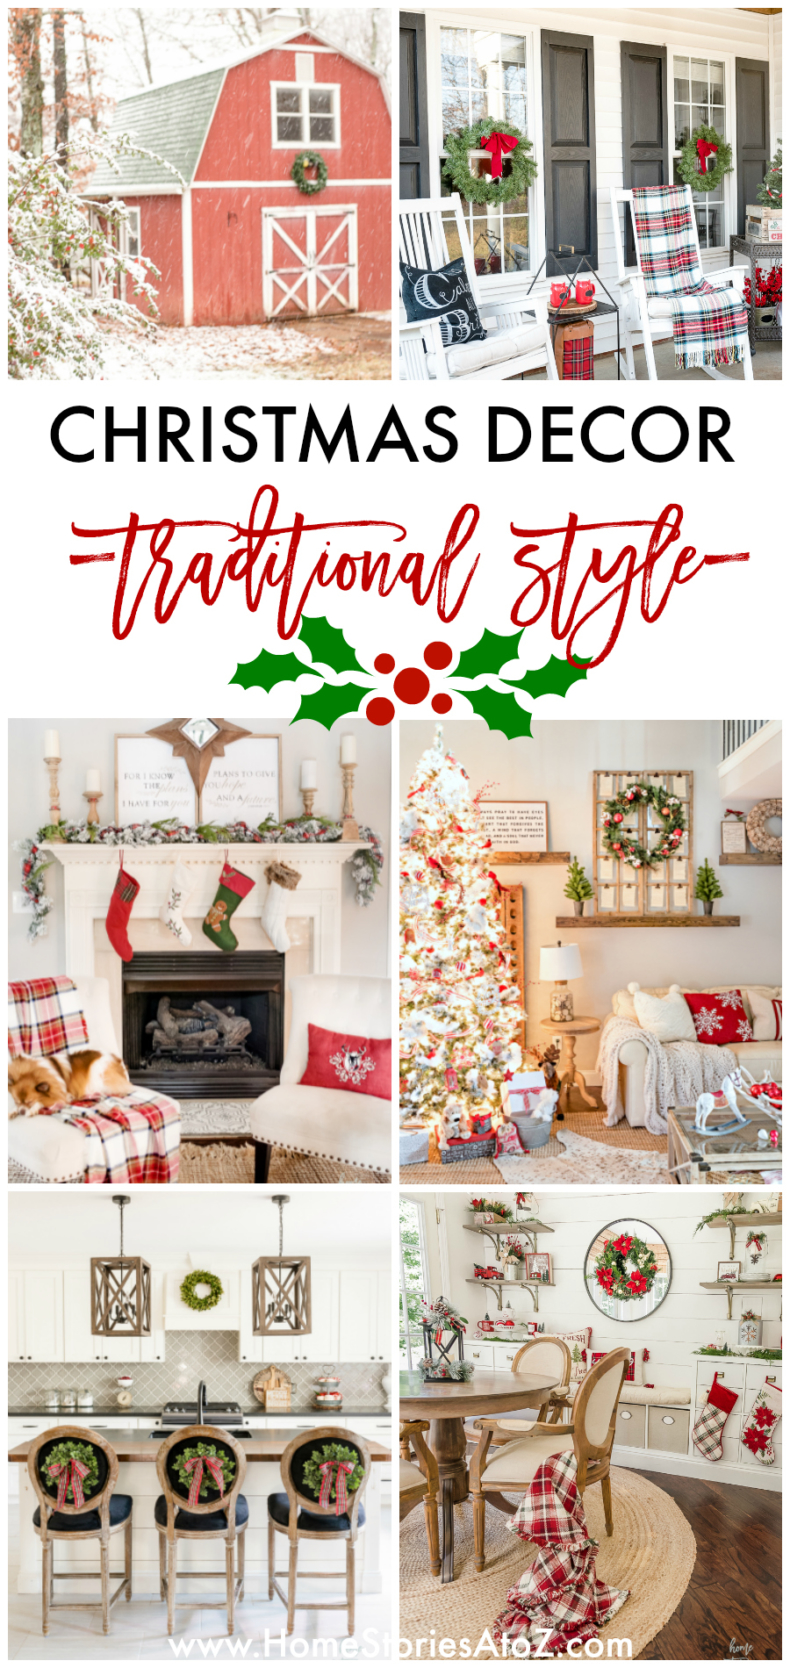 Christmas Decor Traditional Style by Home Stories A to Z